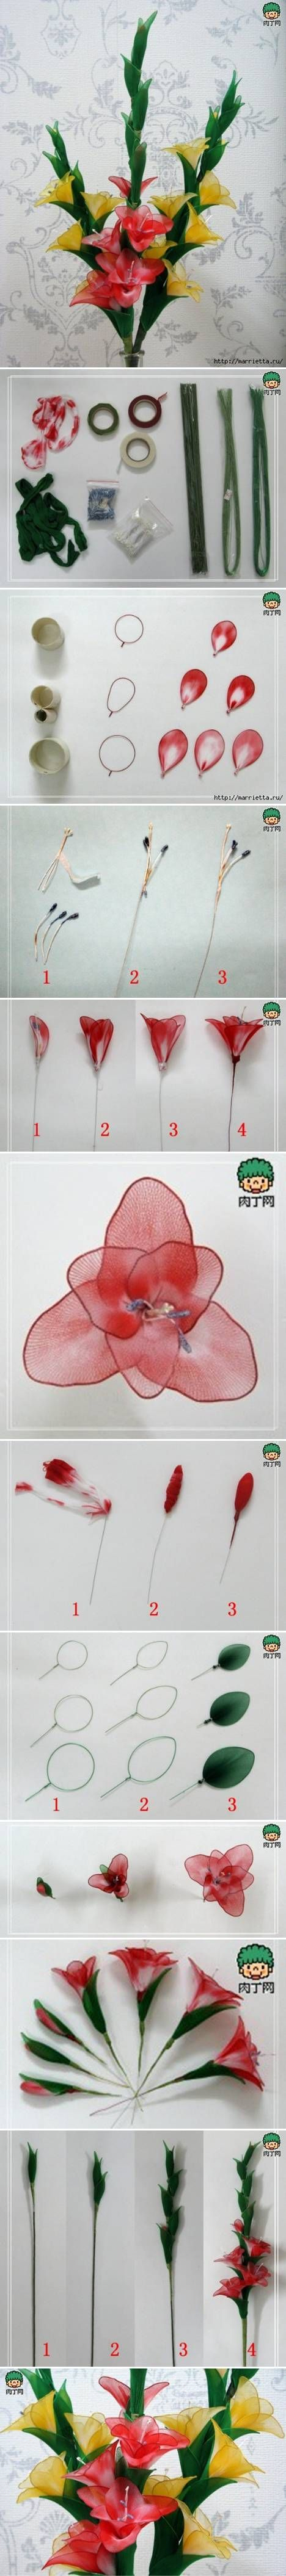 DIY Nylon Galdiolus Flower: